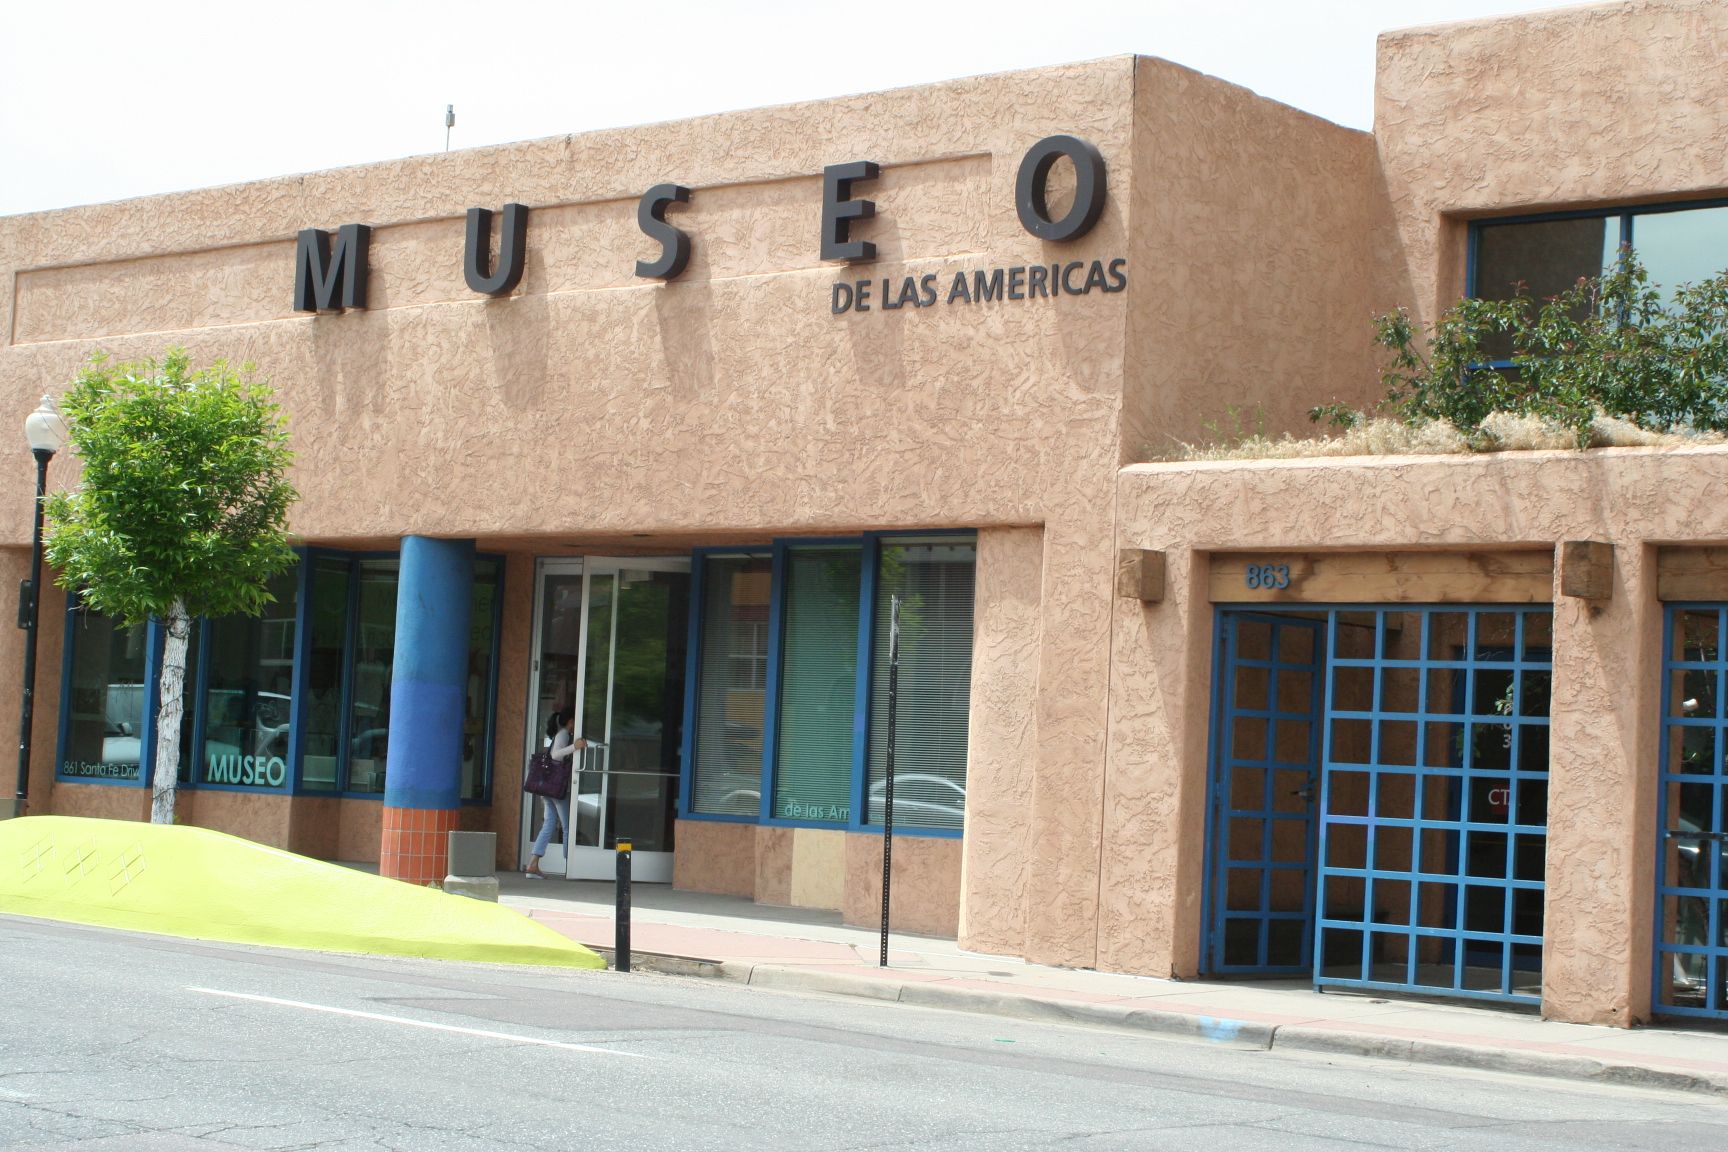 Museo de las Americas was established in 1991 and moved to this location in 1994.